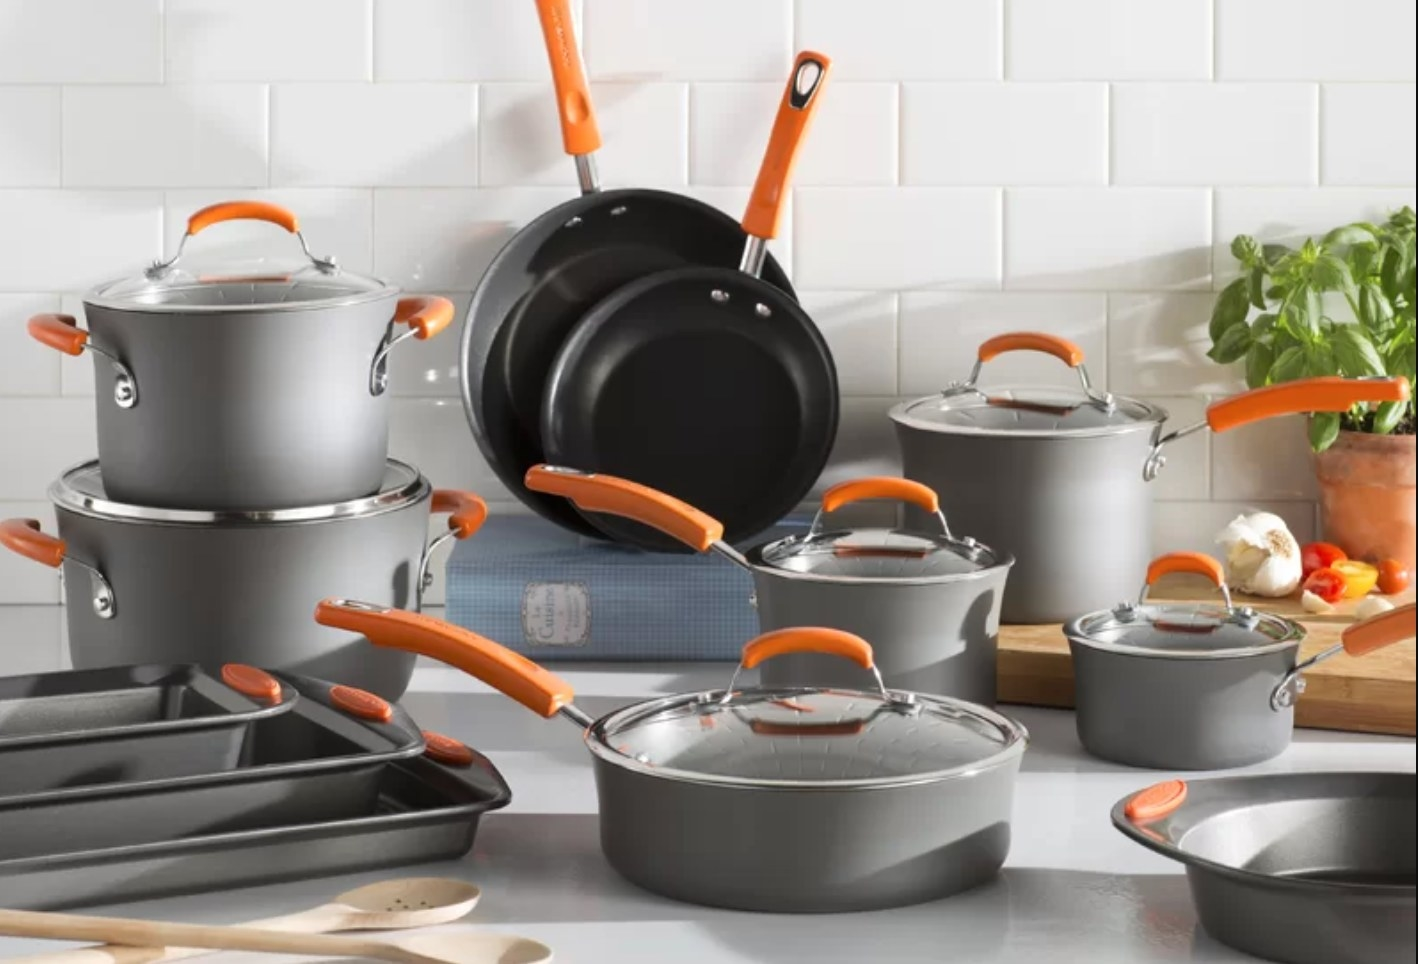 The five-piece cookware set with orange handles